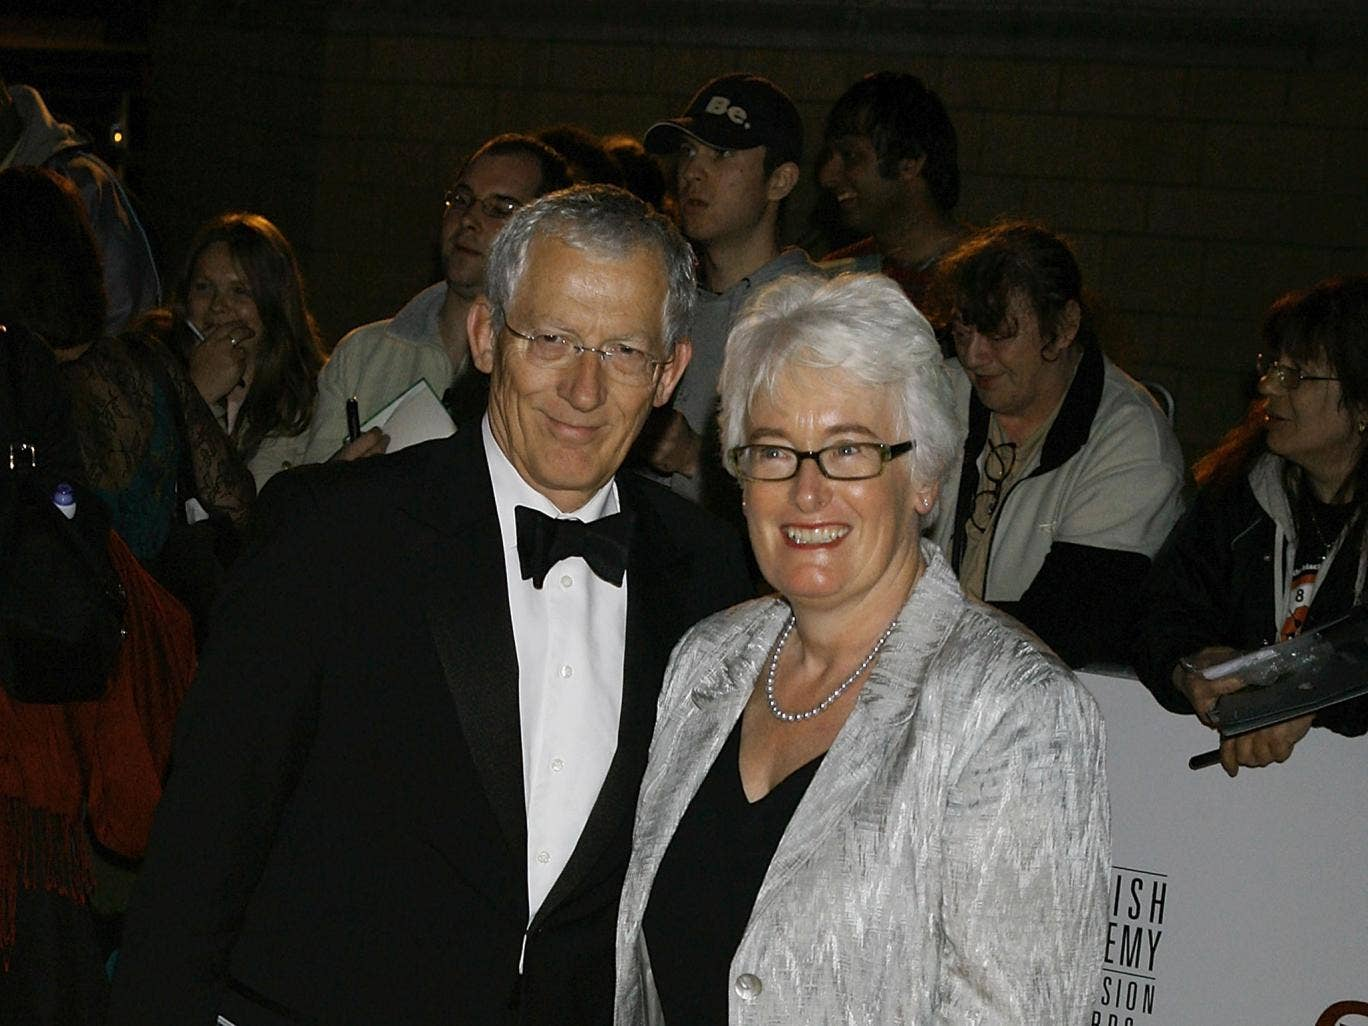 Nick Hewer and Margaret Mountford, co-presenters of BBC1's Nick and Margaret: We Pay Your Benefits